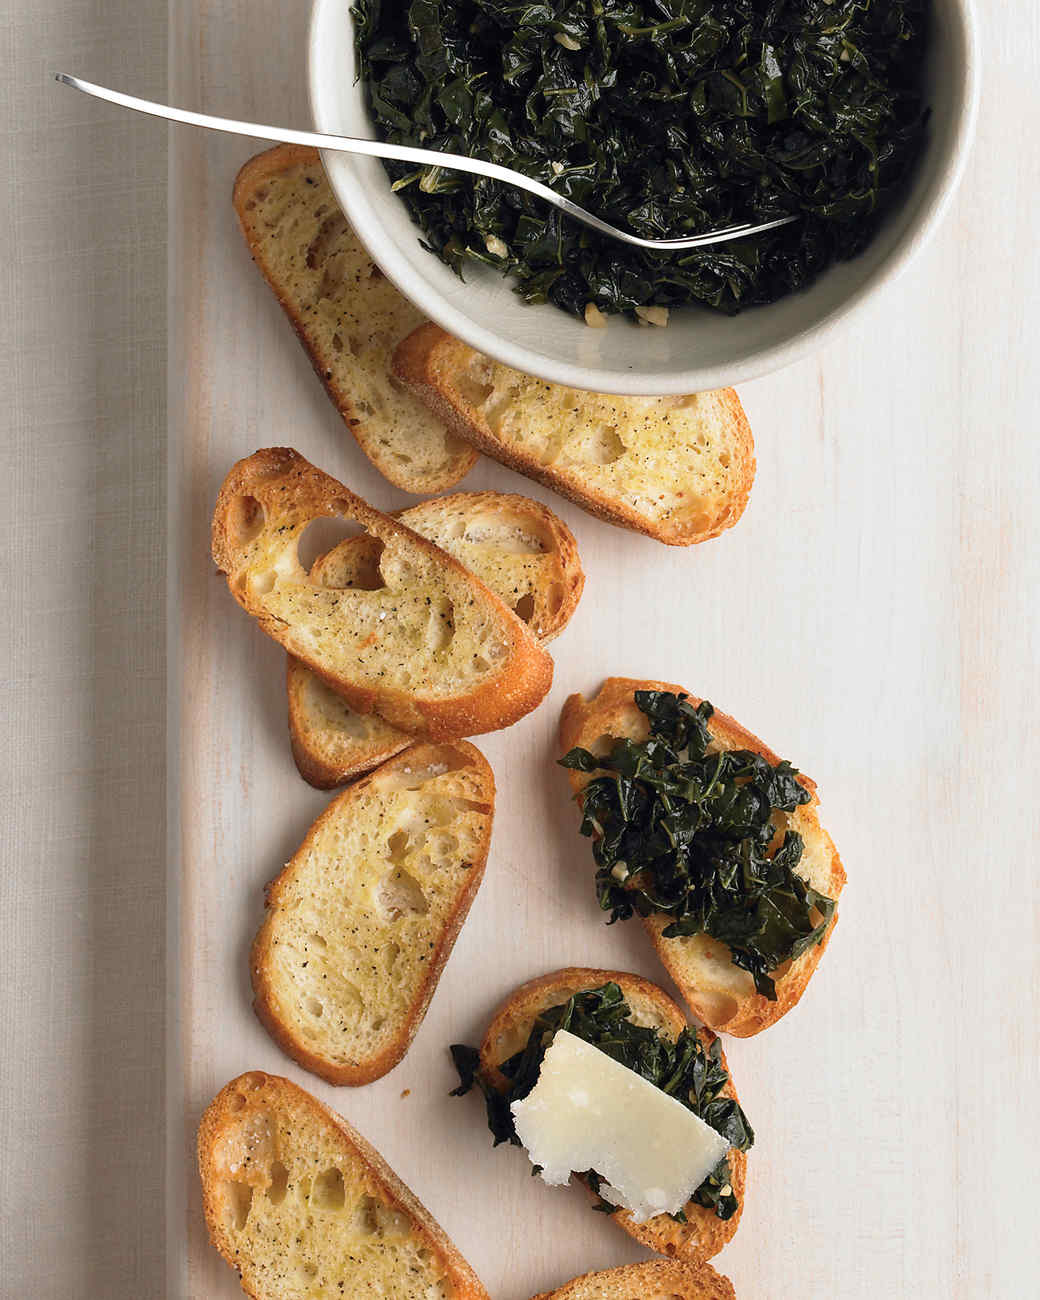 Crostini with Kale and Parmesan